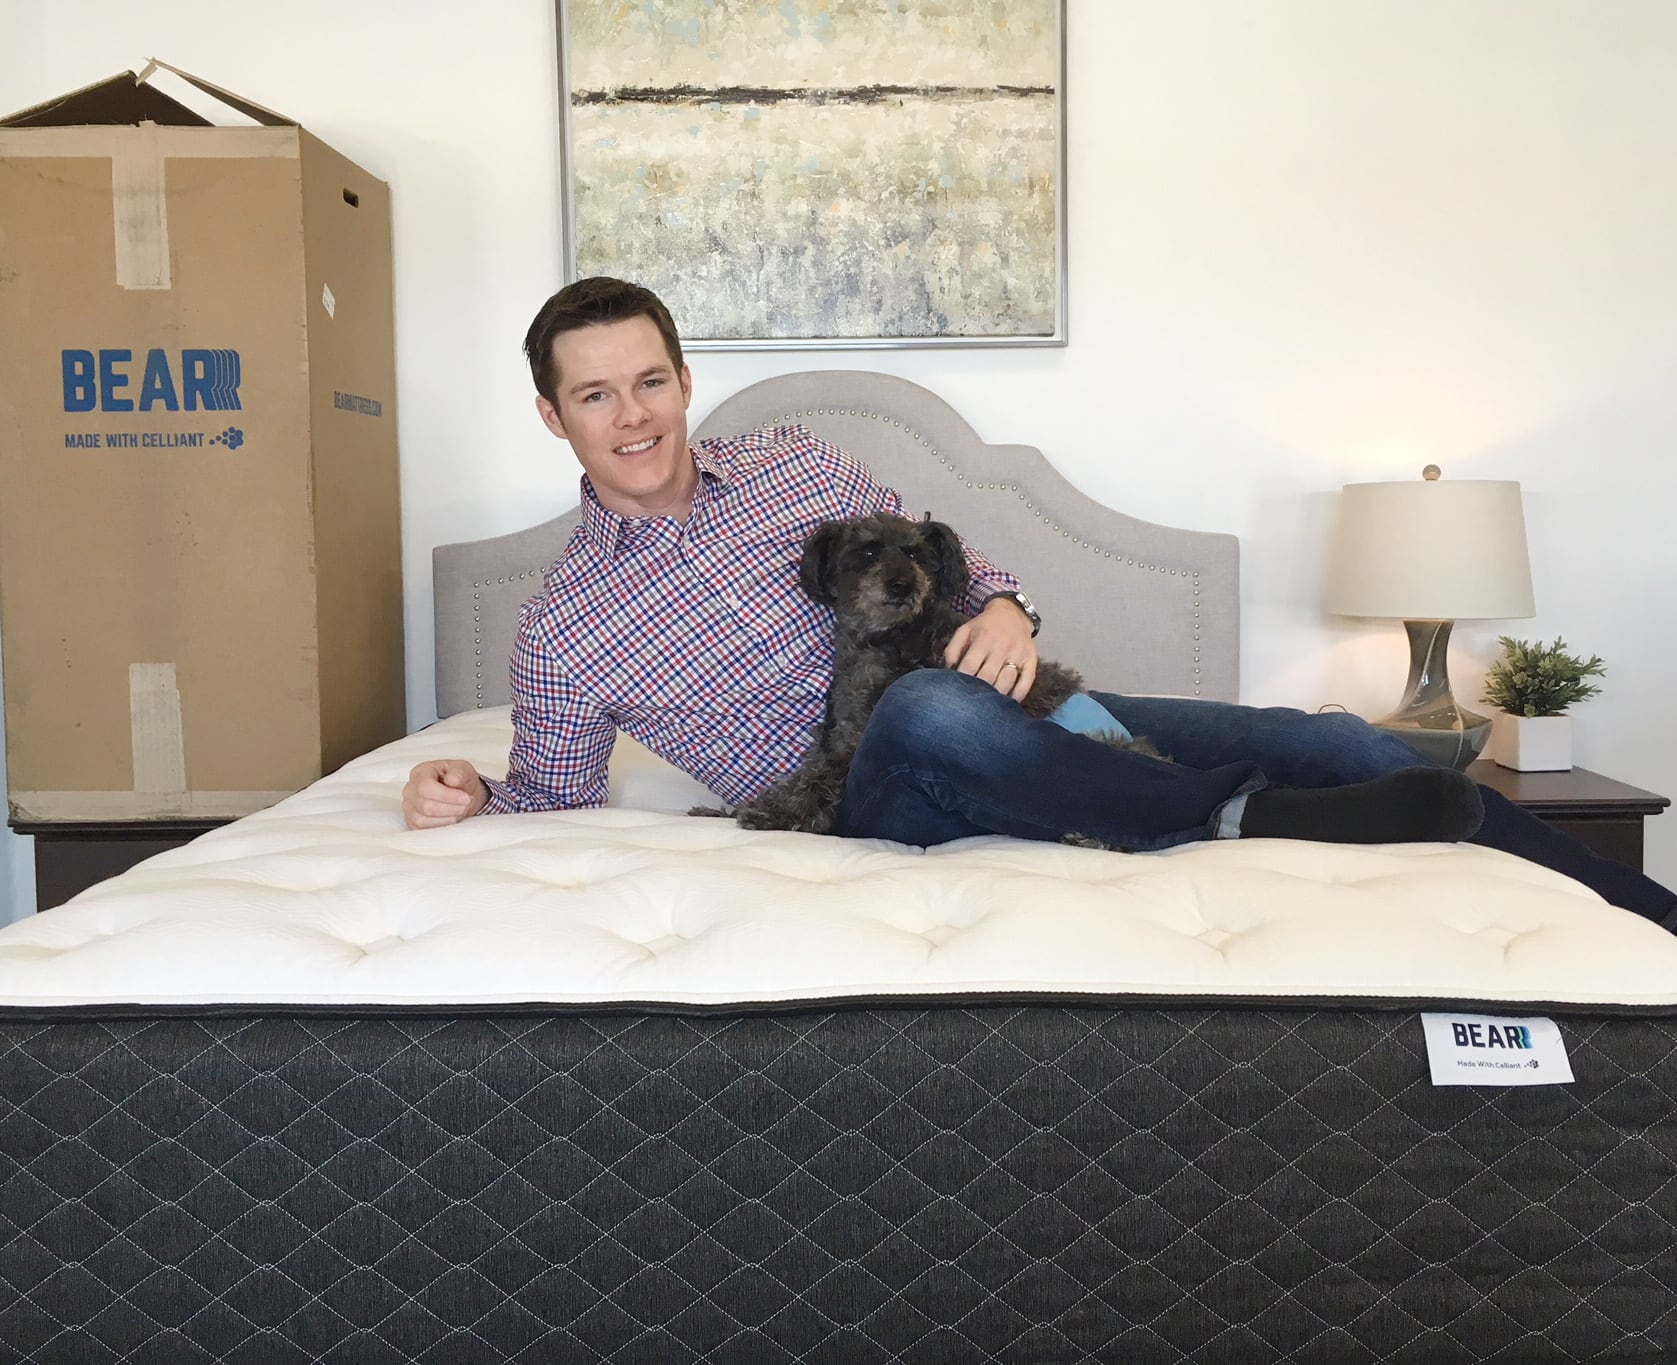 The Bear Hybrid Mattress Is A Super Thick 14 5 That Combines Several Performance Foams With Micro Coil System This Creates Very Balanced And